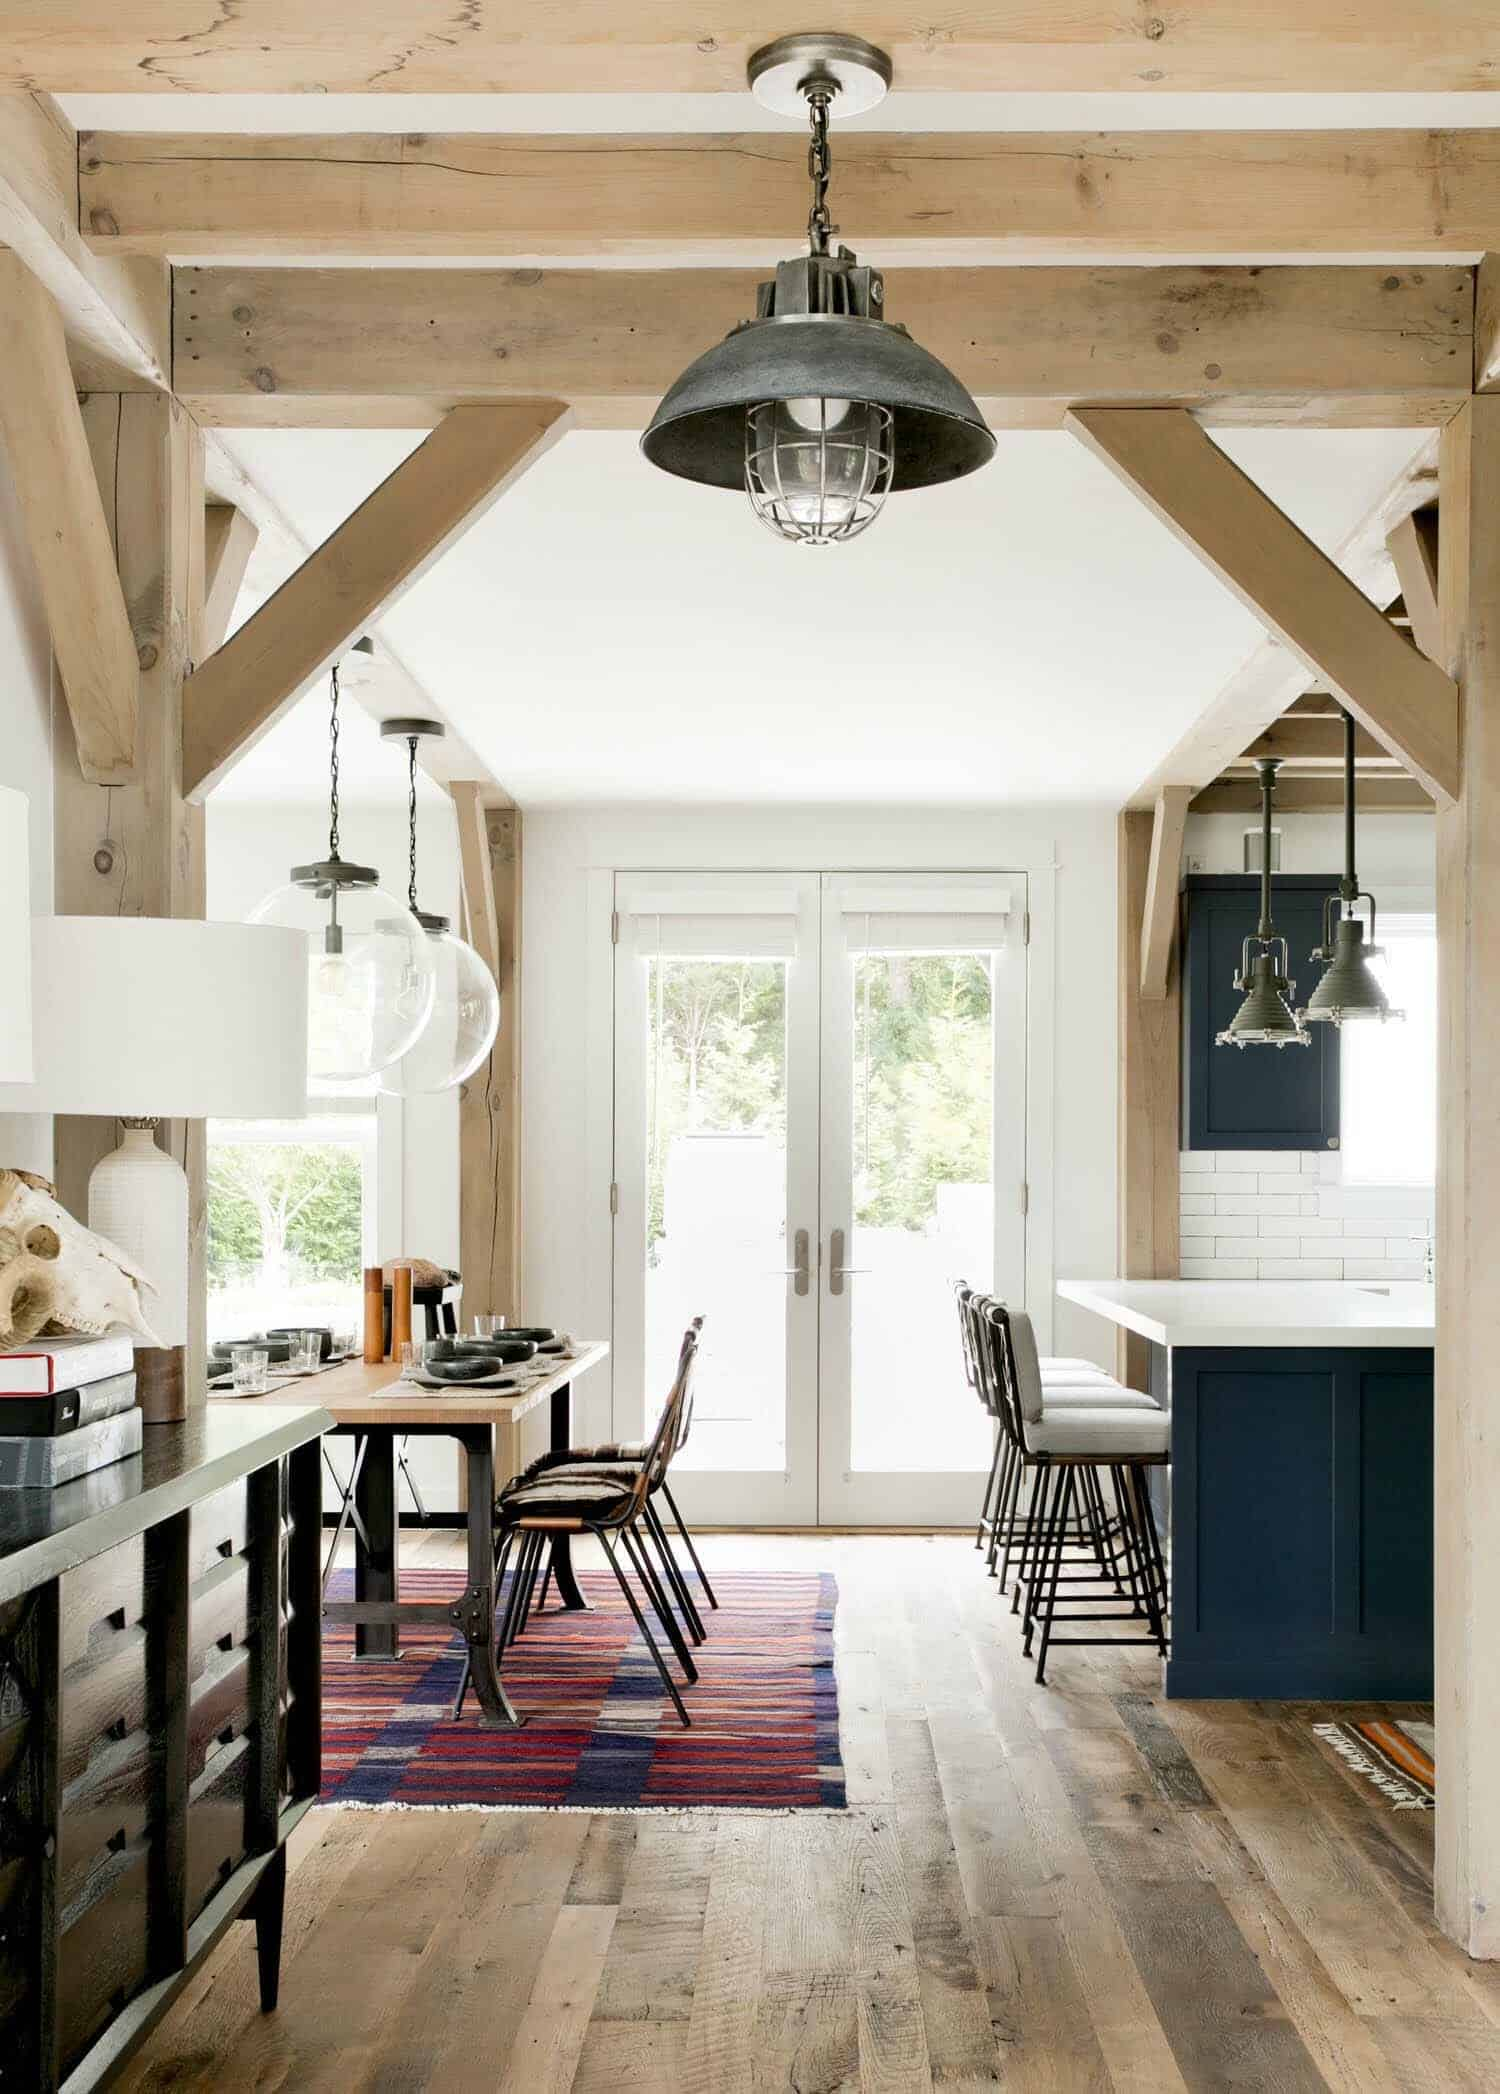 Ultra chic farmhouse style dwelling in the village of Sag Harbor modern farmhouse interior